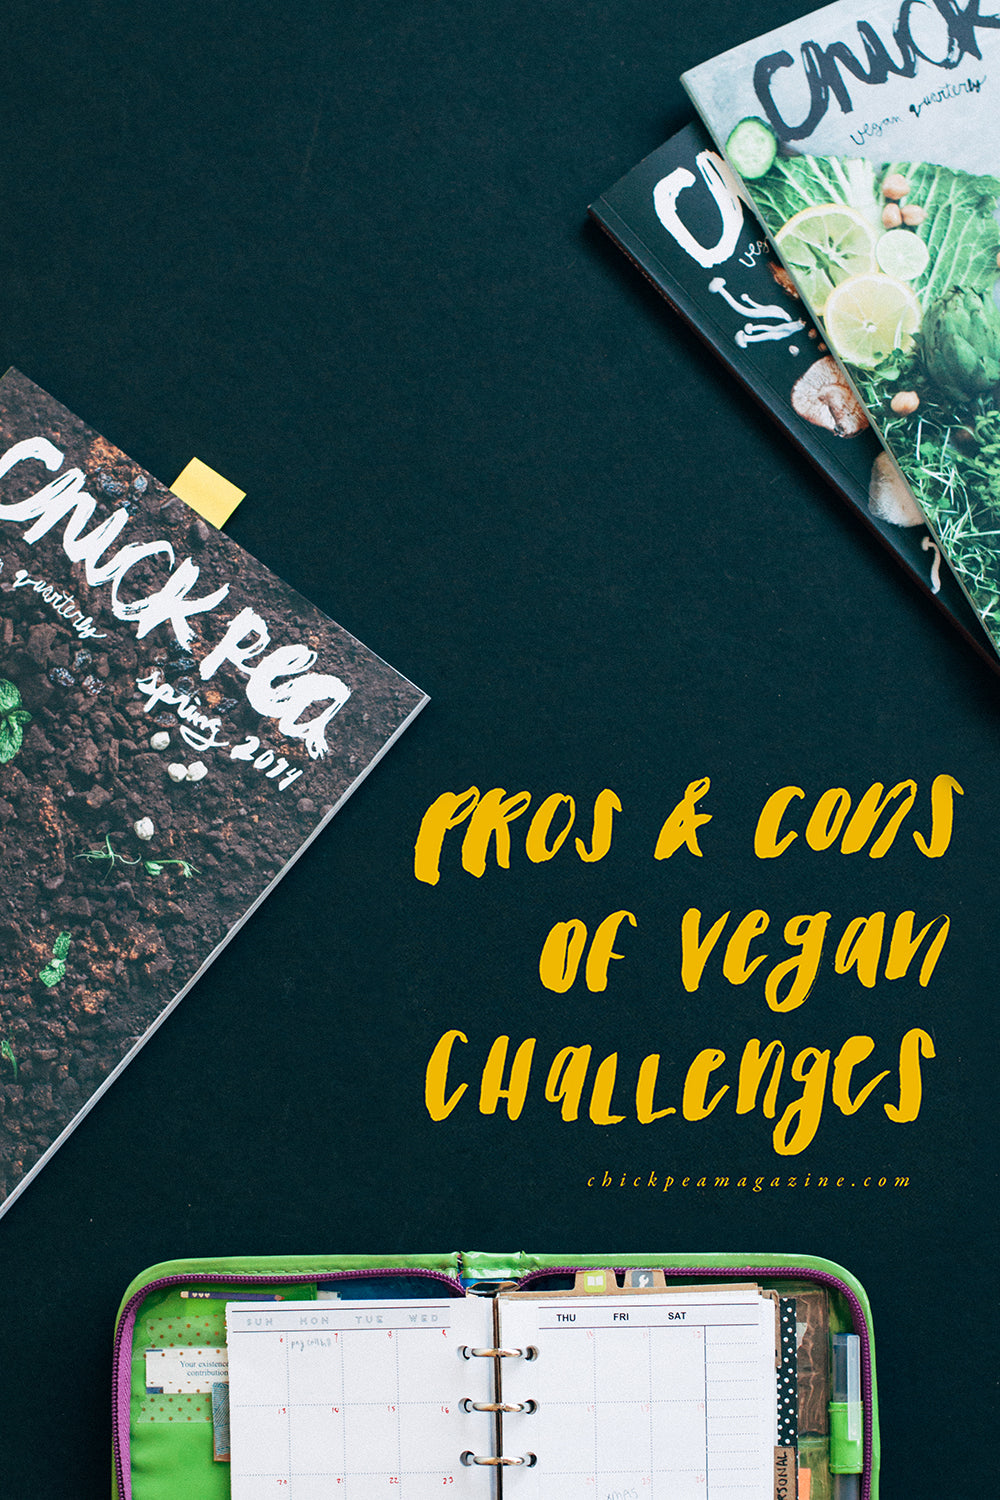 pros and cons of vegan challenges